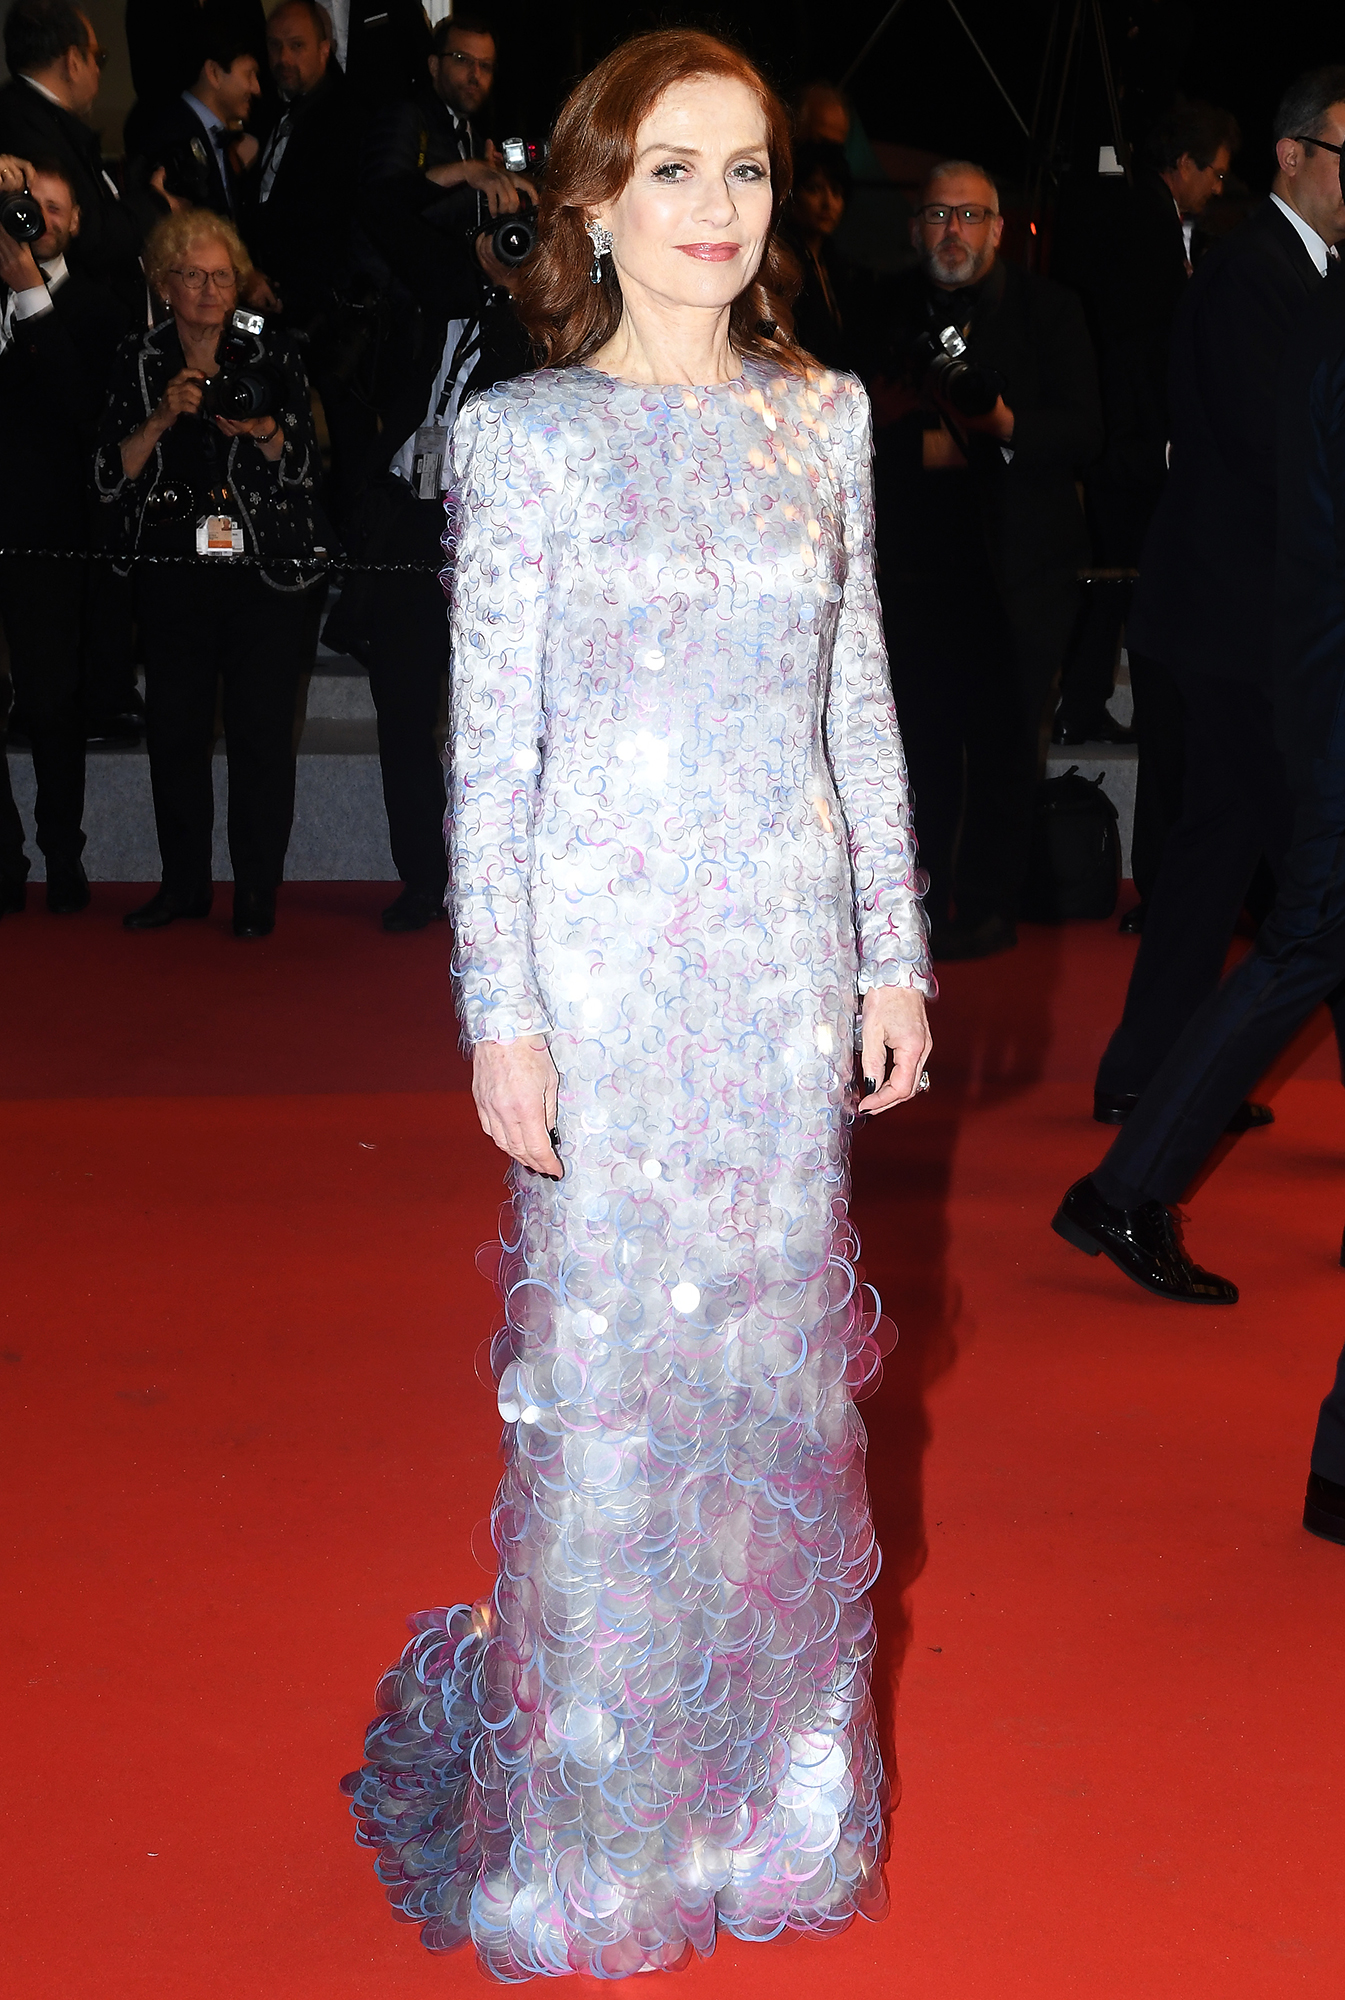 Isabelle-Huppert - The Frankie star stunned in a long-sleeve embellished gown at the film's premiere on Monday, May 20.